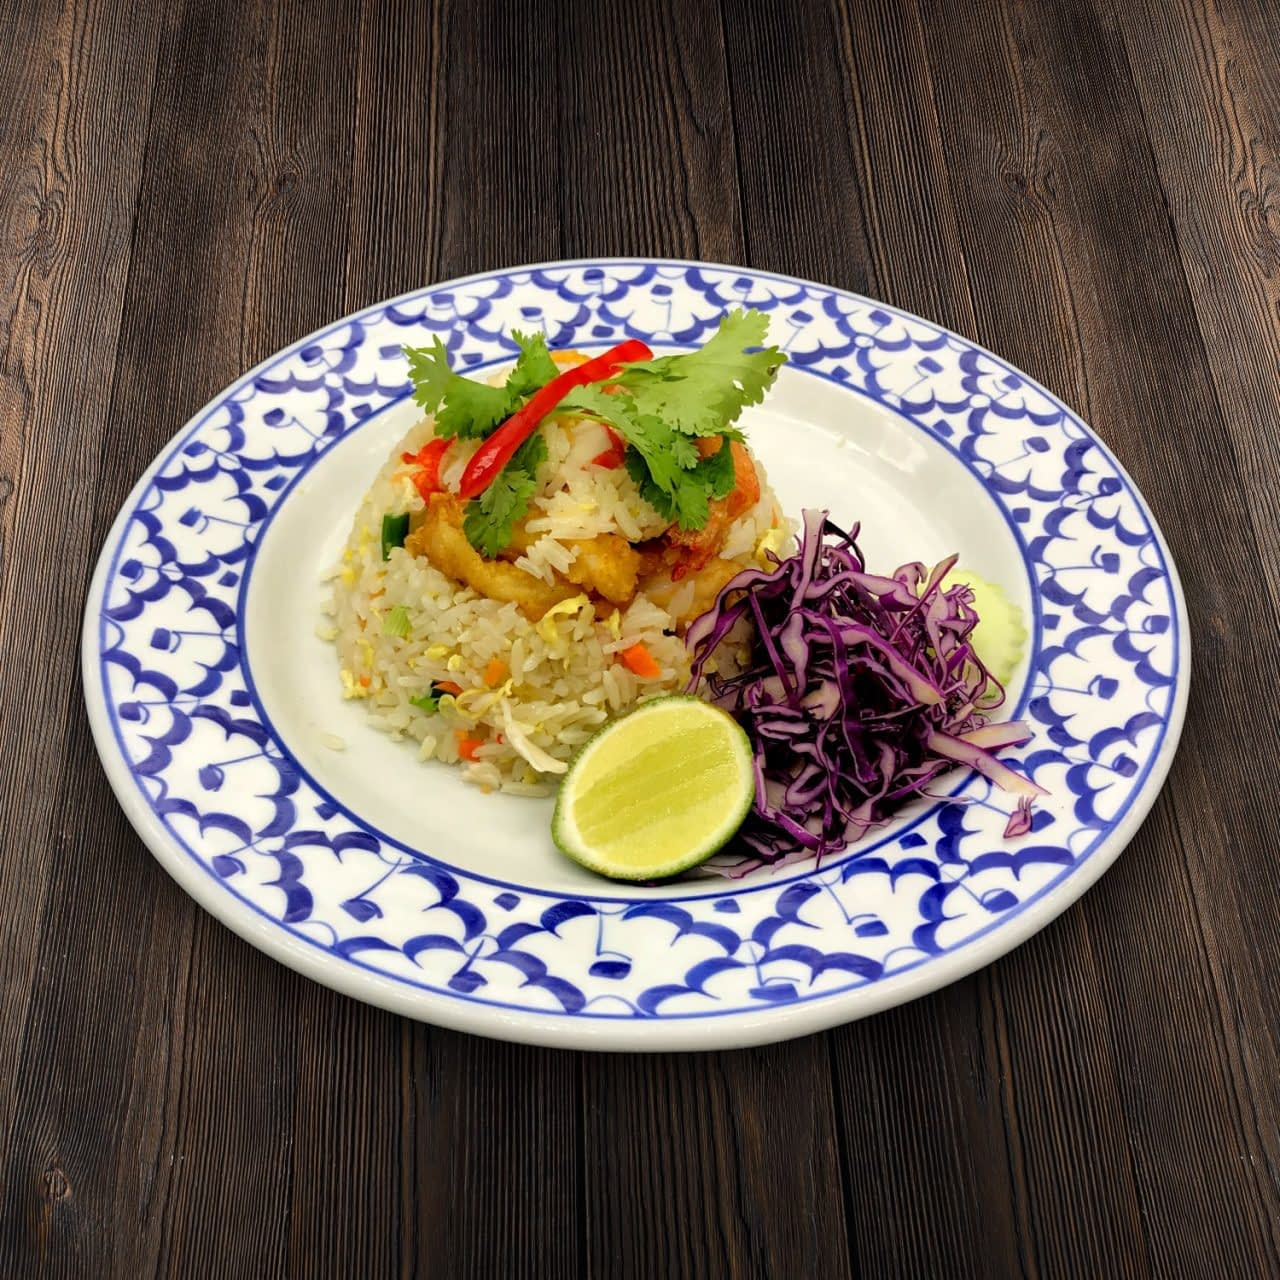 Thai Food Delivery Kuala Lumpur Seafood Fried Rice